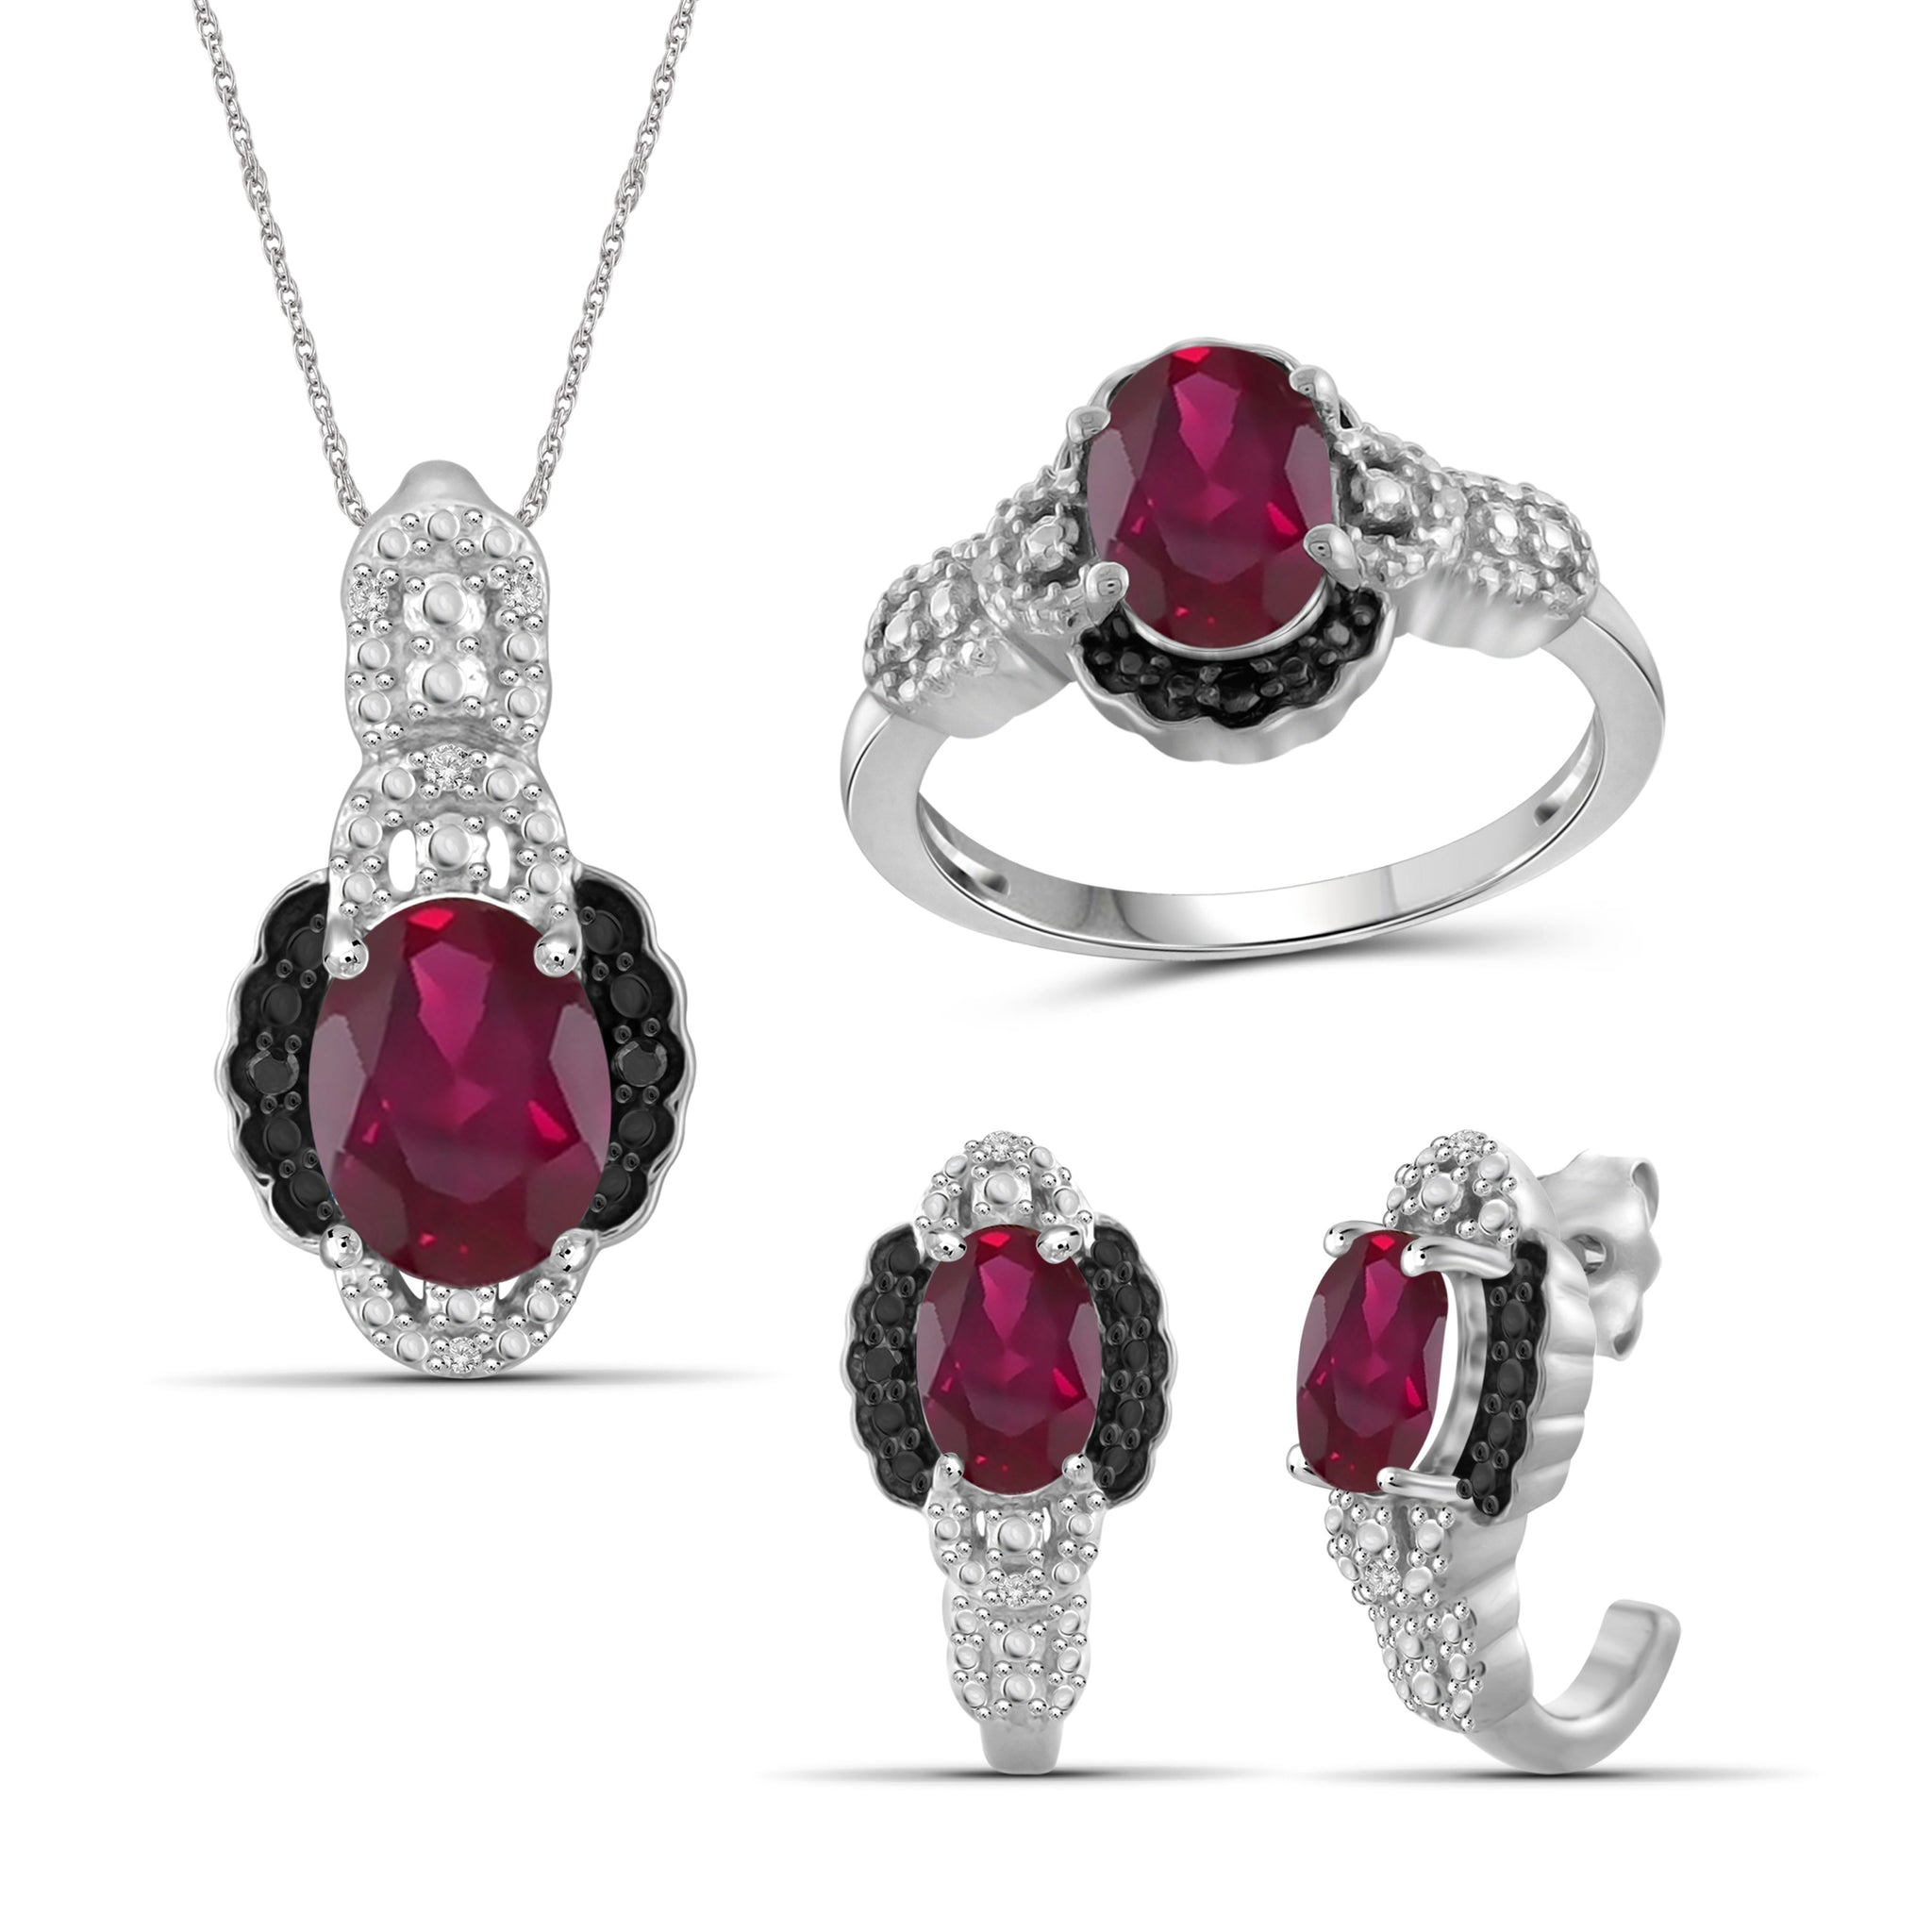 JewelersClub 4.80 Carat T.G.W. Ruby And 1/10 Carat T.W. Black & White Diamond Sterling Silver 3 Piece Jewelry Set - Assorted Colors